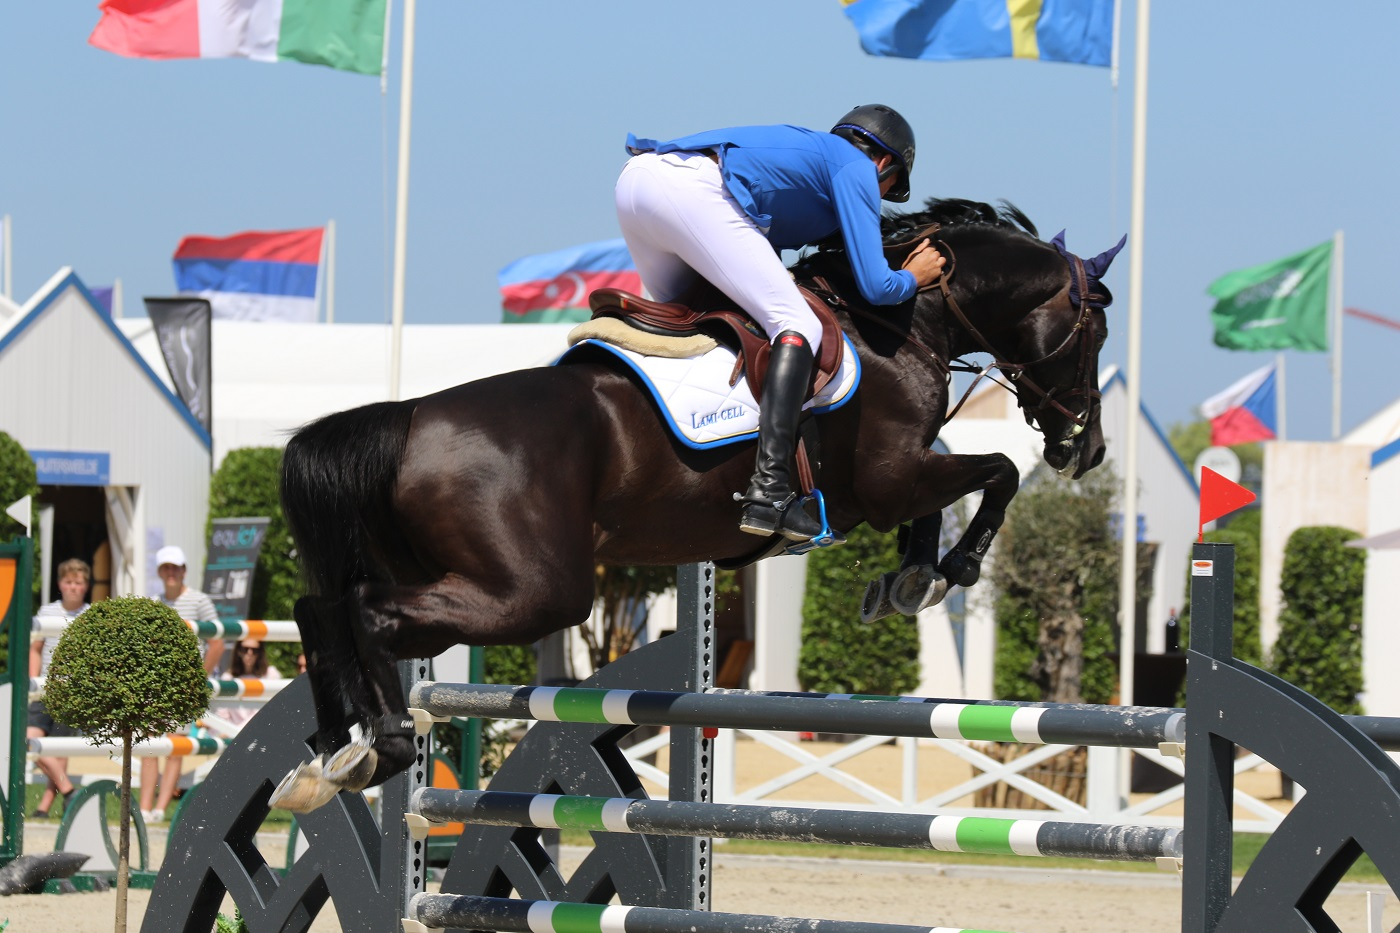 Bruce Goodin wins FEI World Cup Qualifier of Sharjah